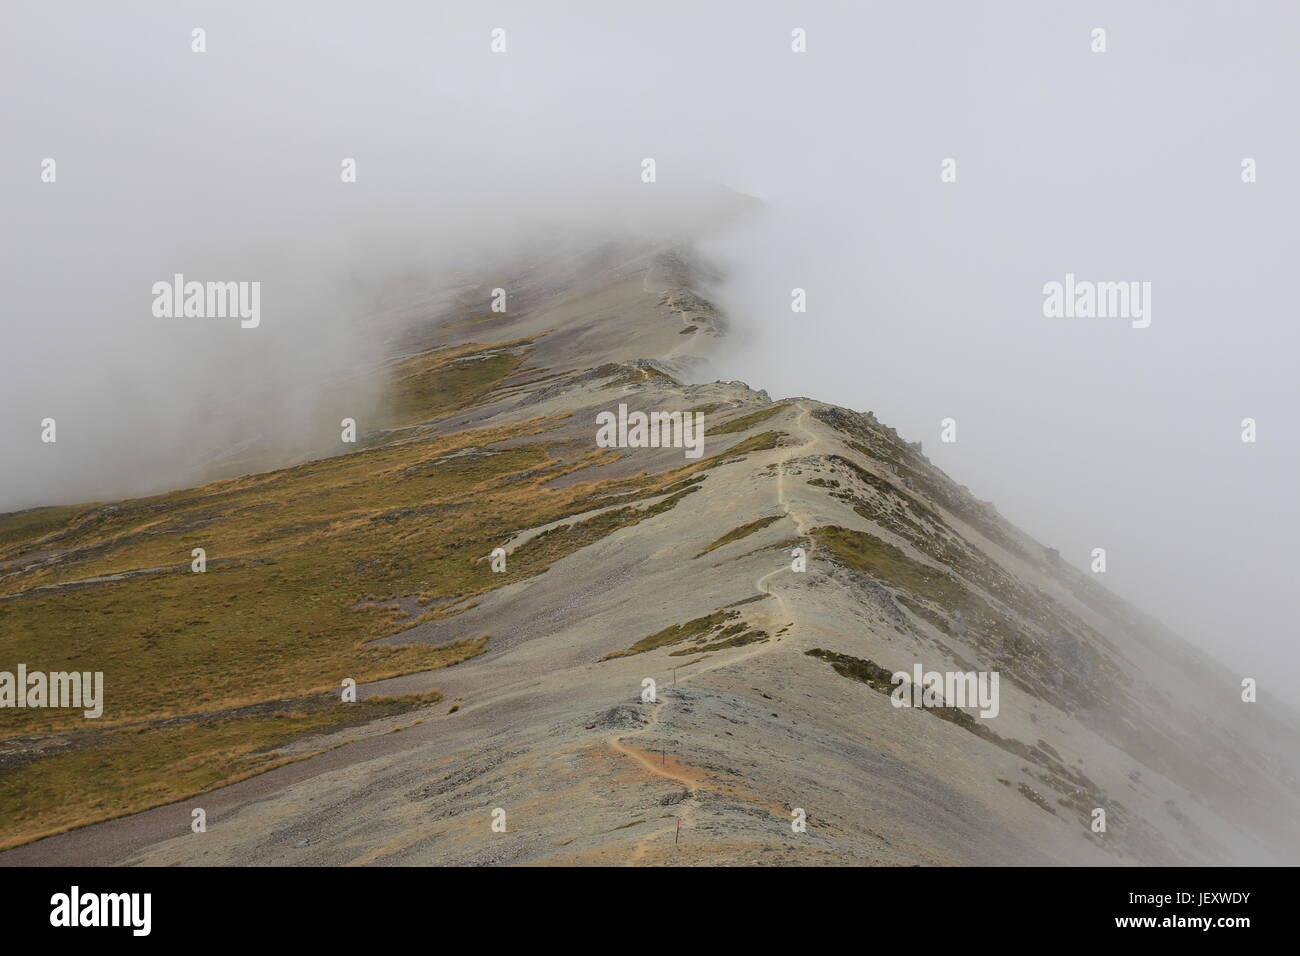 Tramping on a fogy day - Stock Image